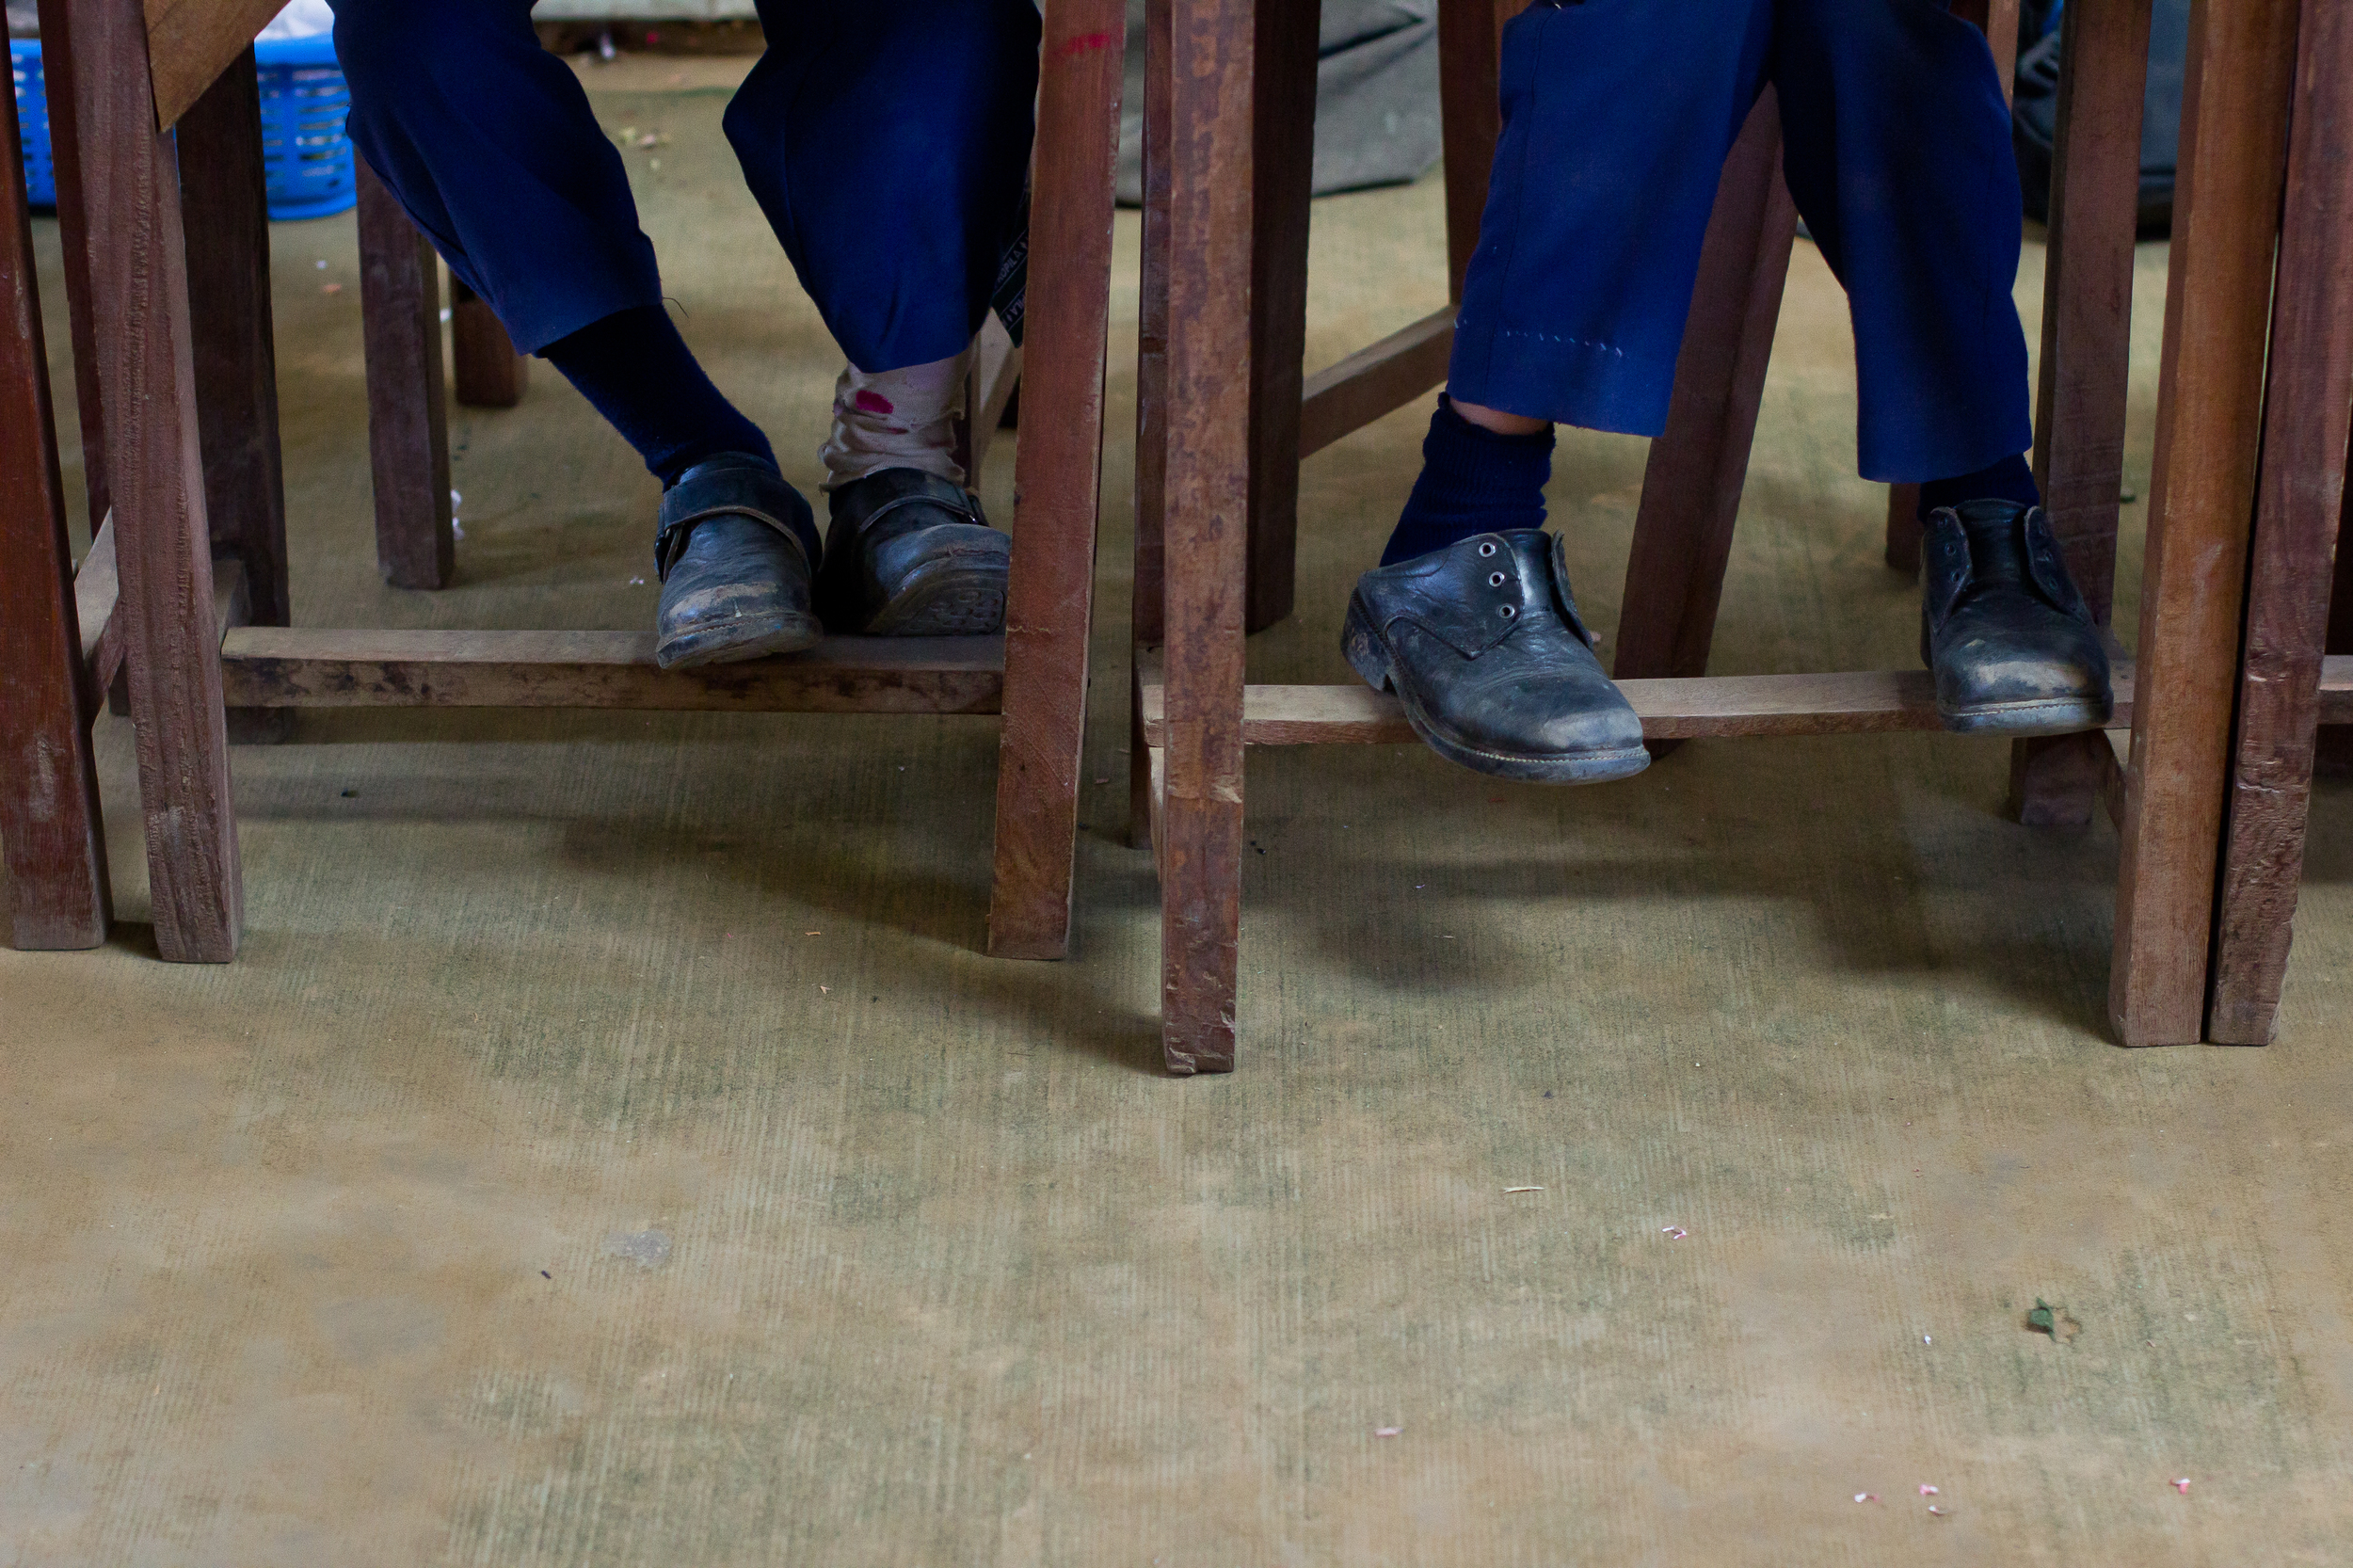 Feet of She's the First Scholar Tika G., right, in Nepal, March 2015. (photo by Kate Lord)